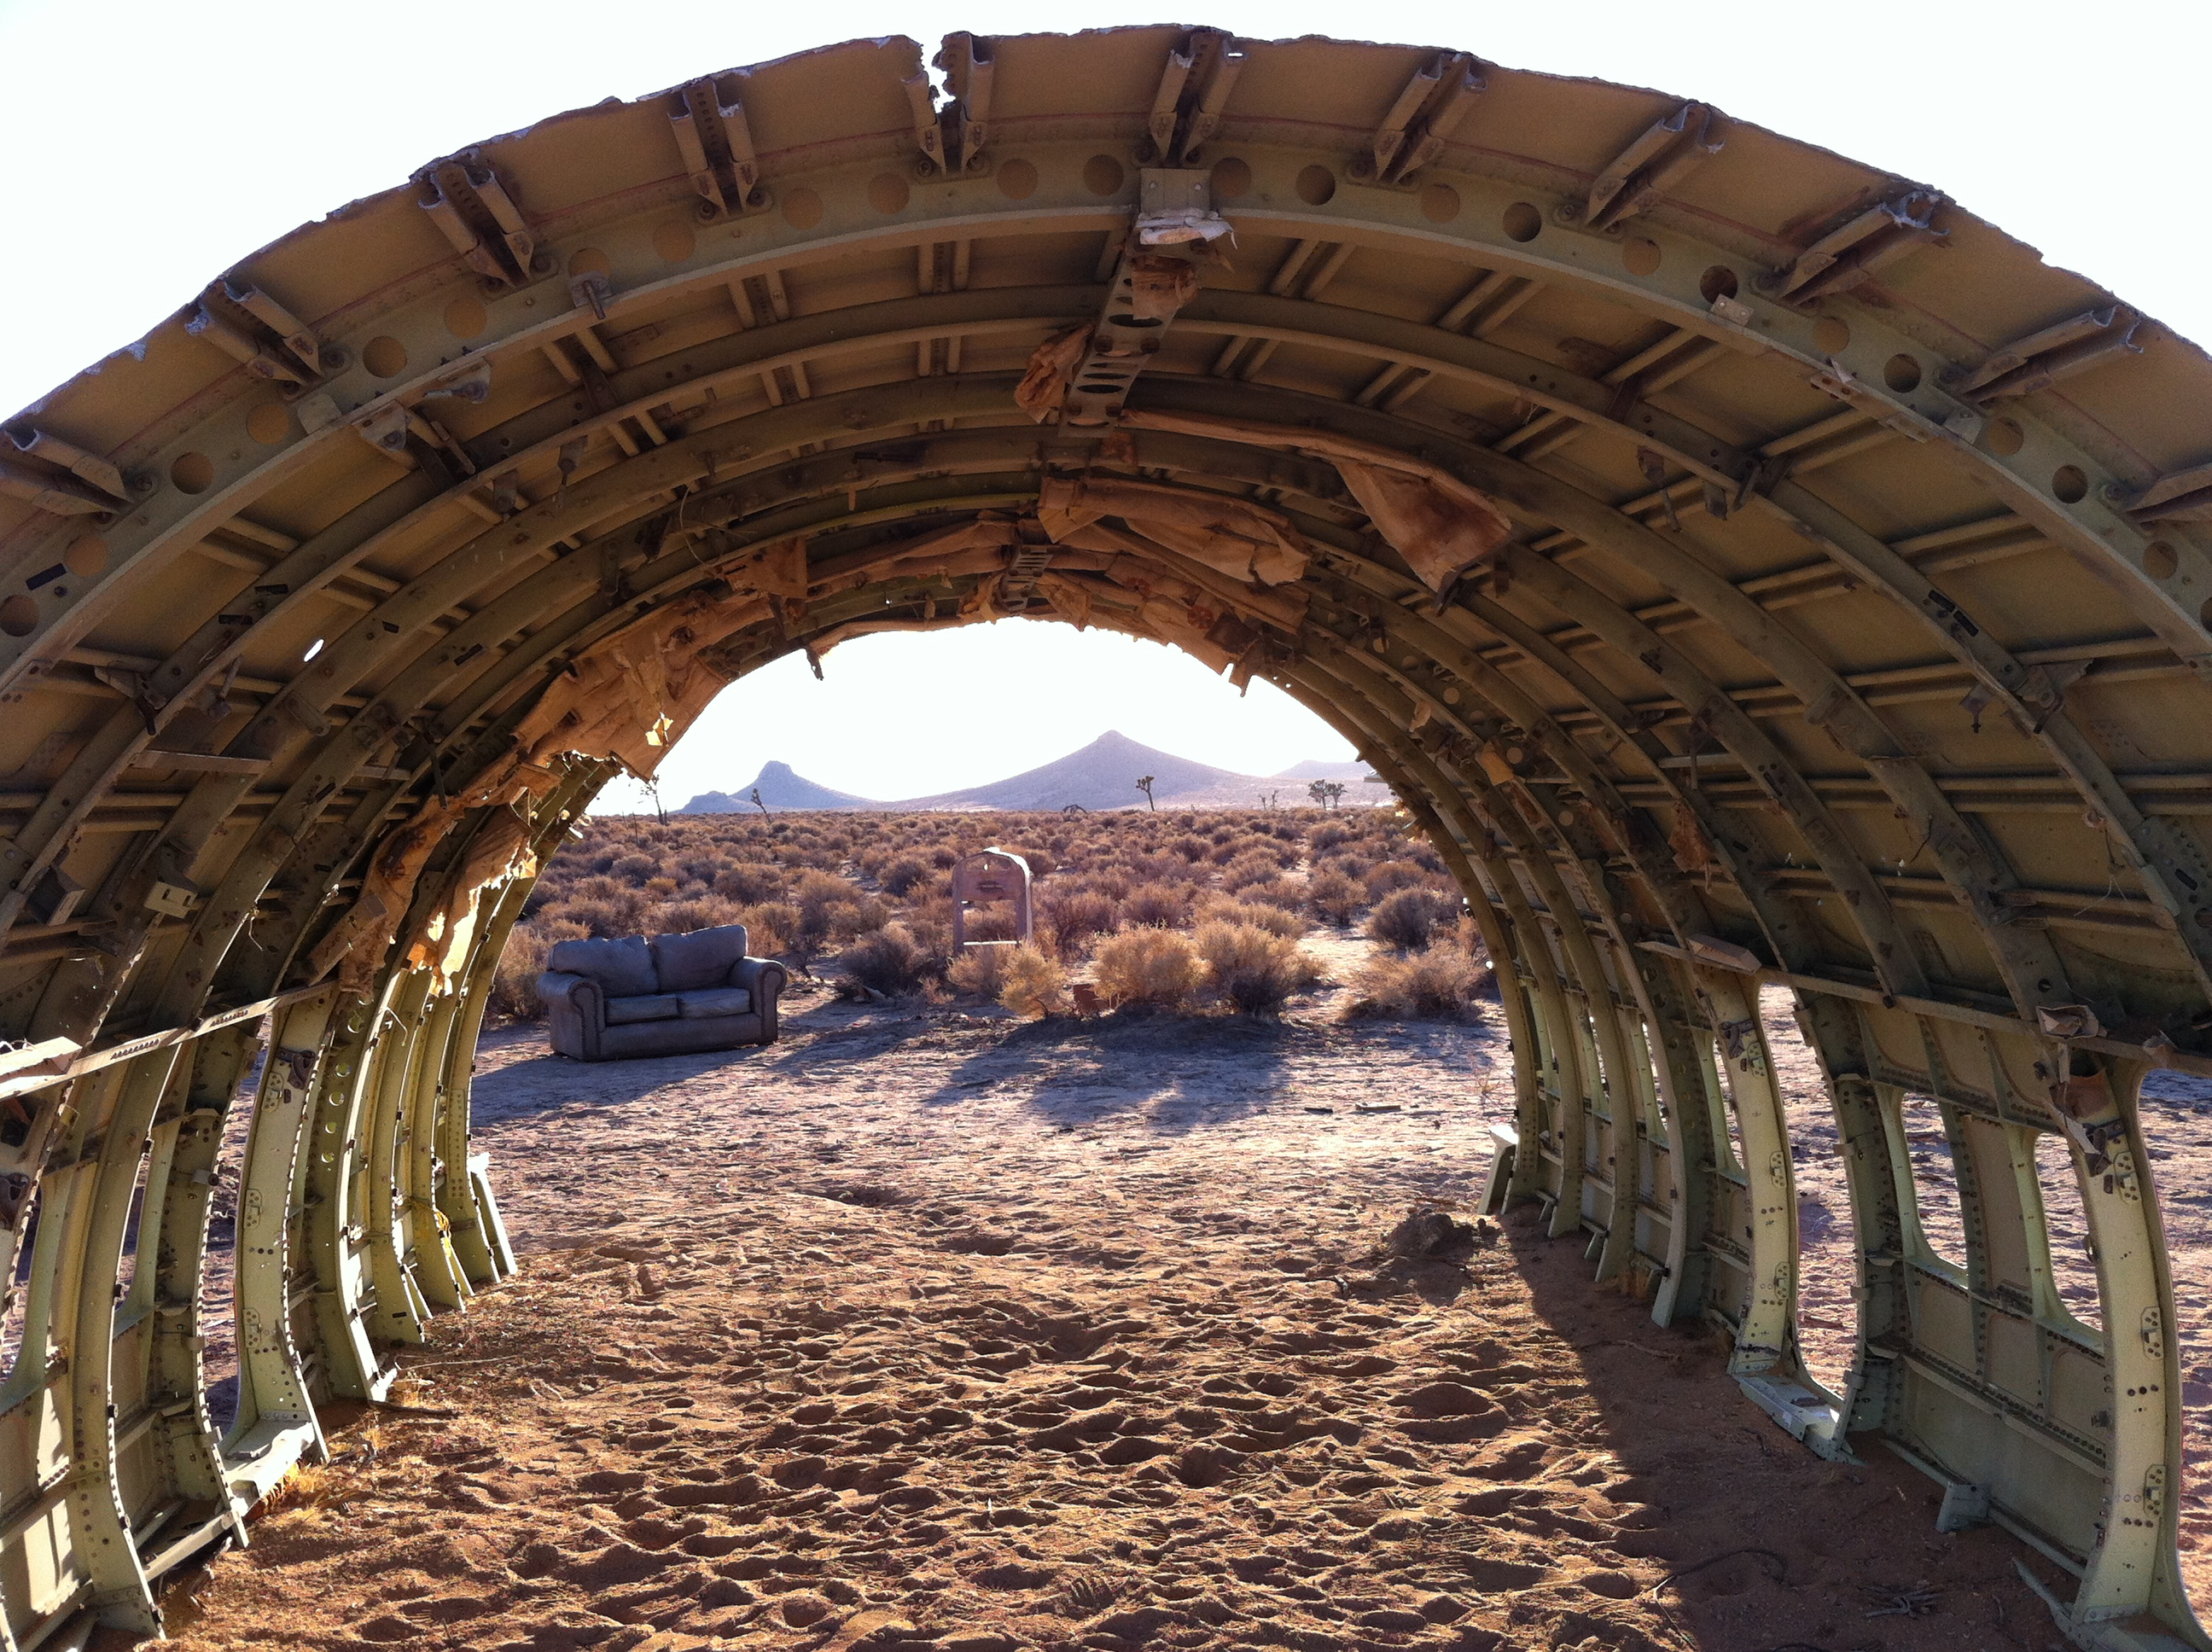 UltimateGraveyard Mojave Desert Photography & Film Location - Wrecked Plane Shell